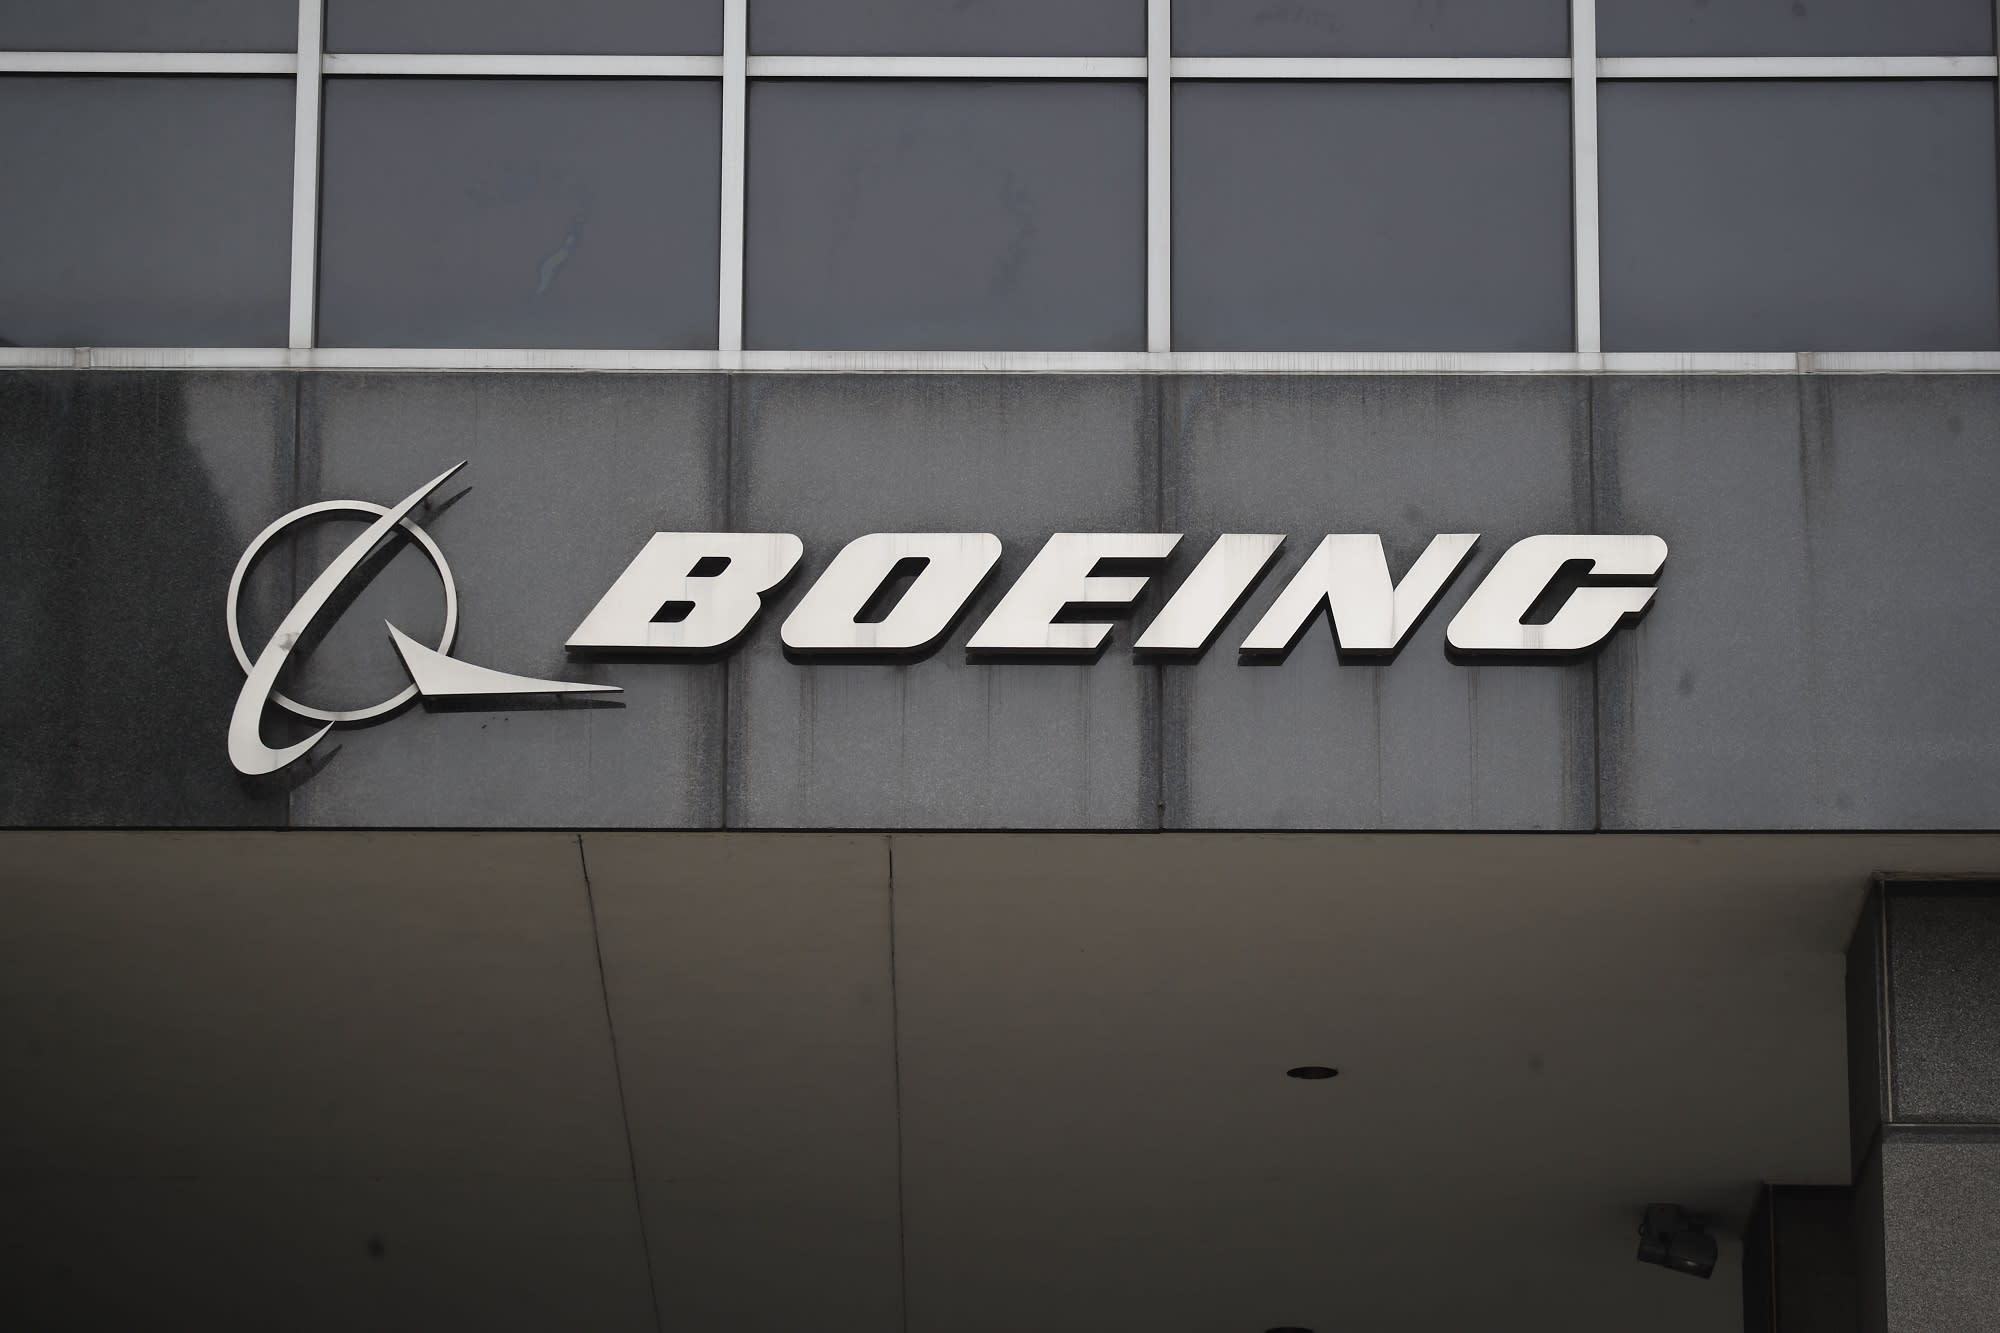 Boeing is making a comeback, and technician sees more highs ahead